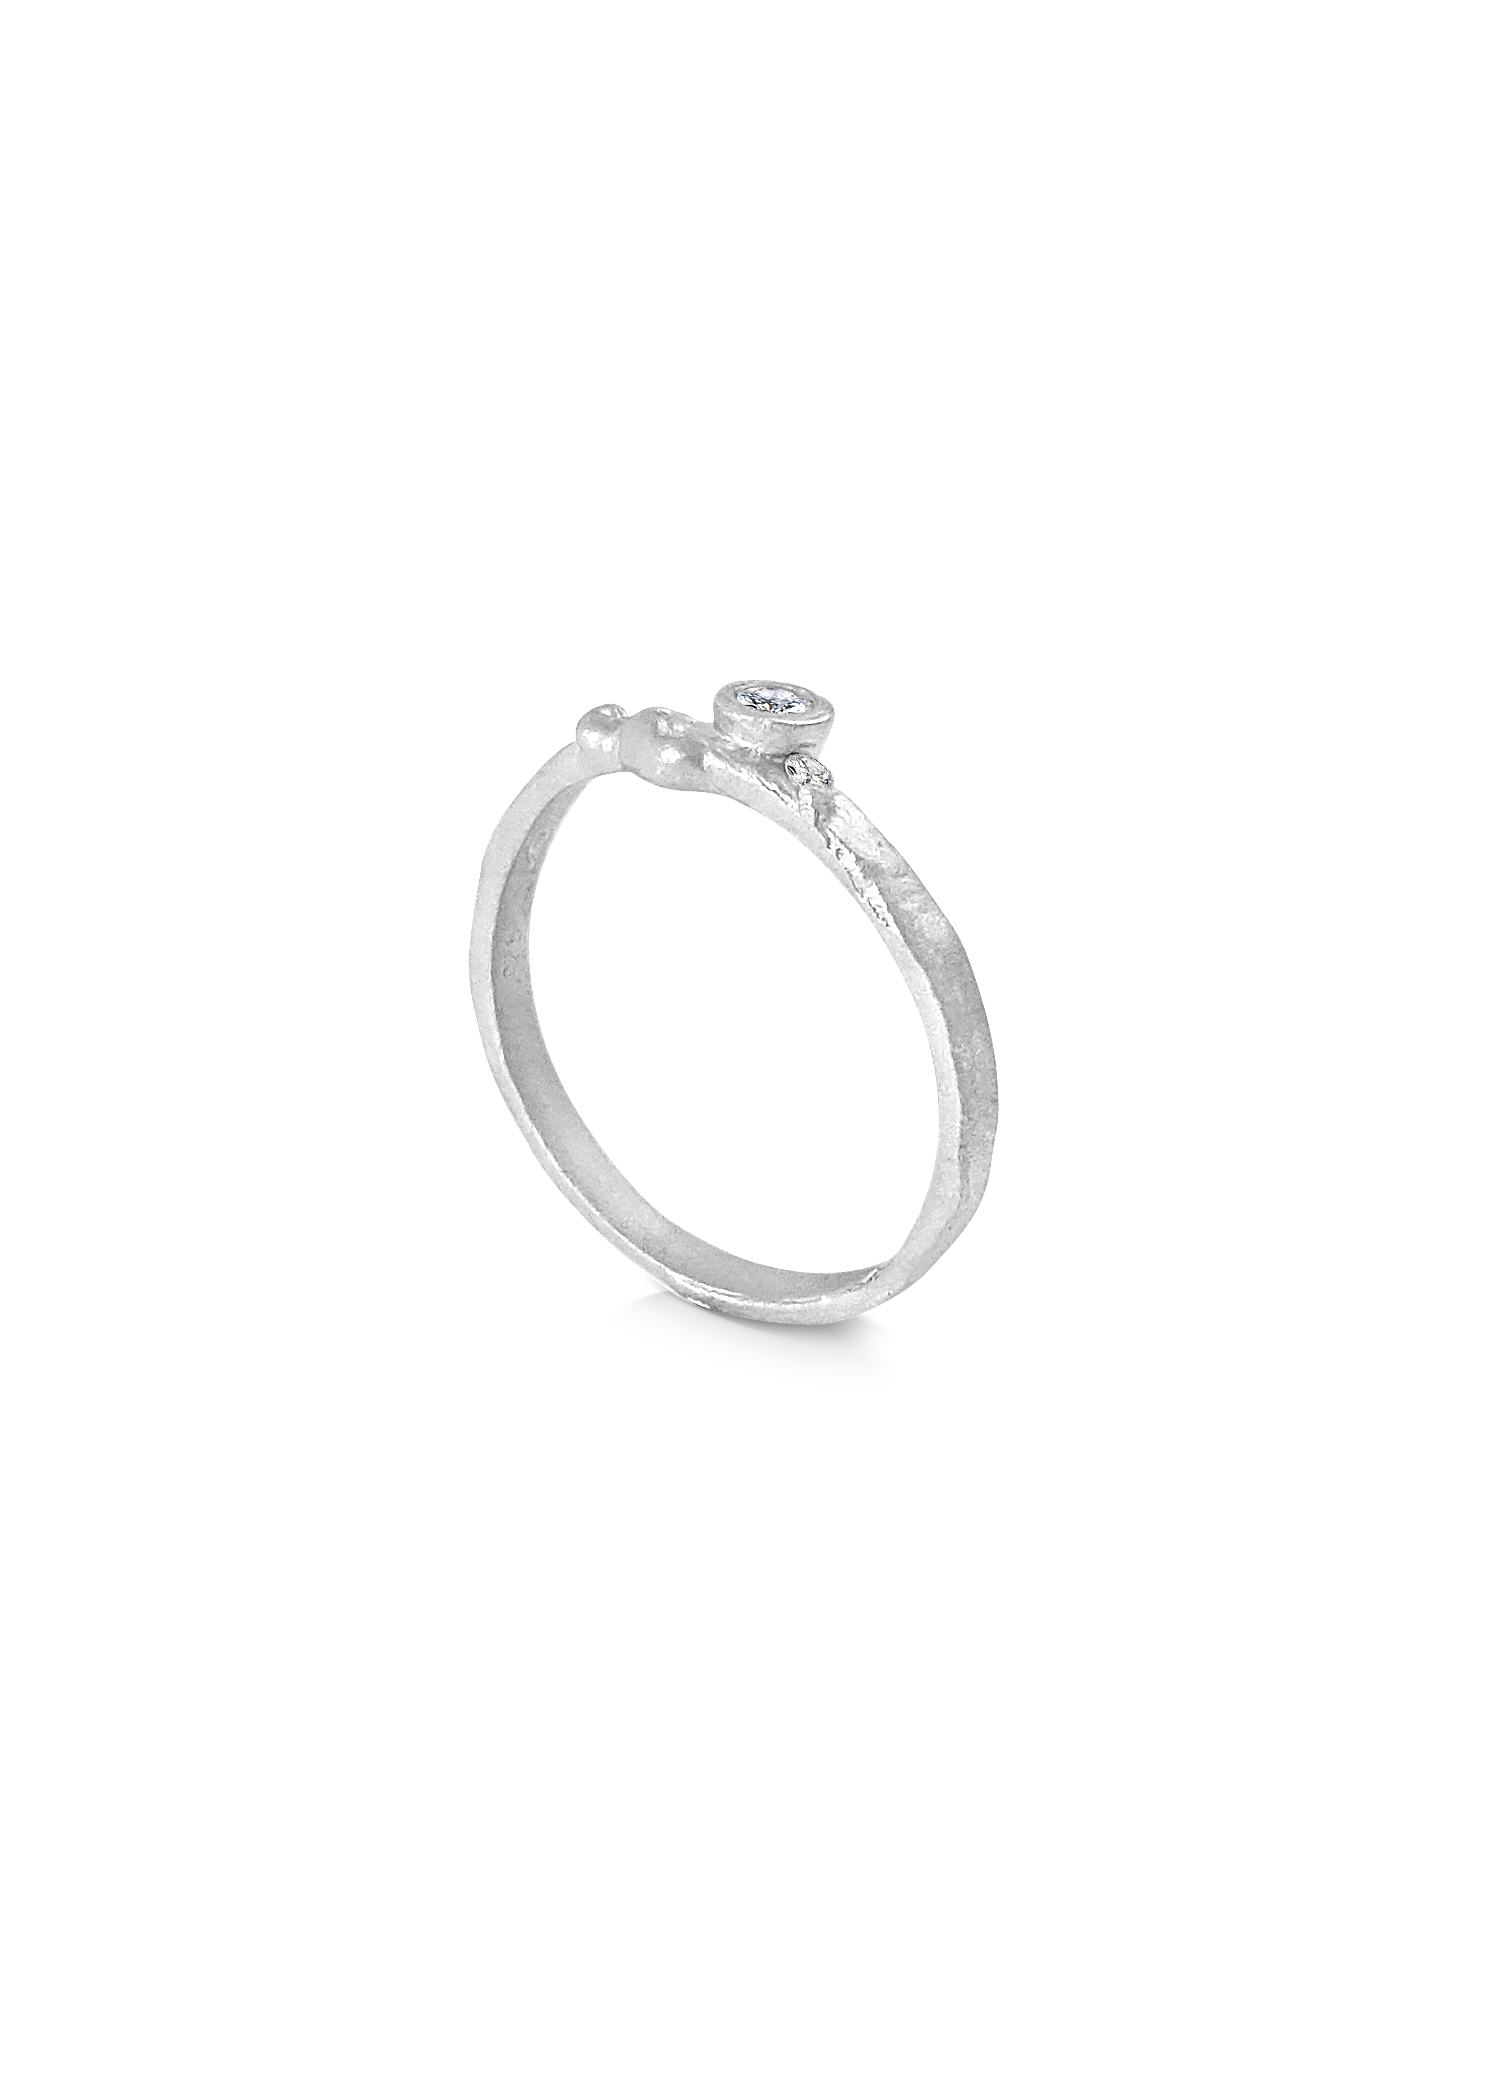 Misty Forest Serein Silver Ring